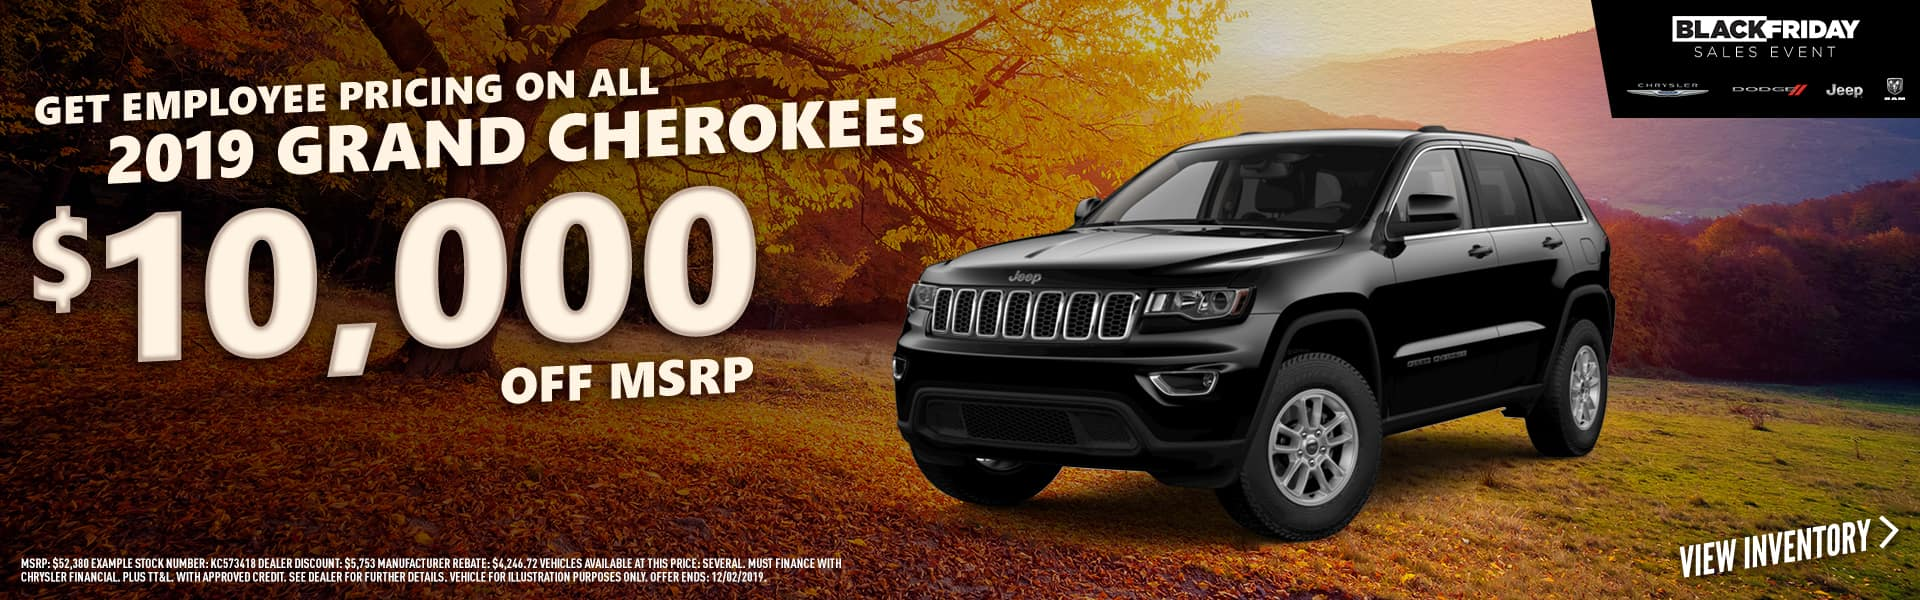 2019 Grand Cherokees - $10,000 off with Employee Pricing on the last remaining 2019